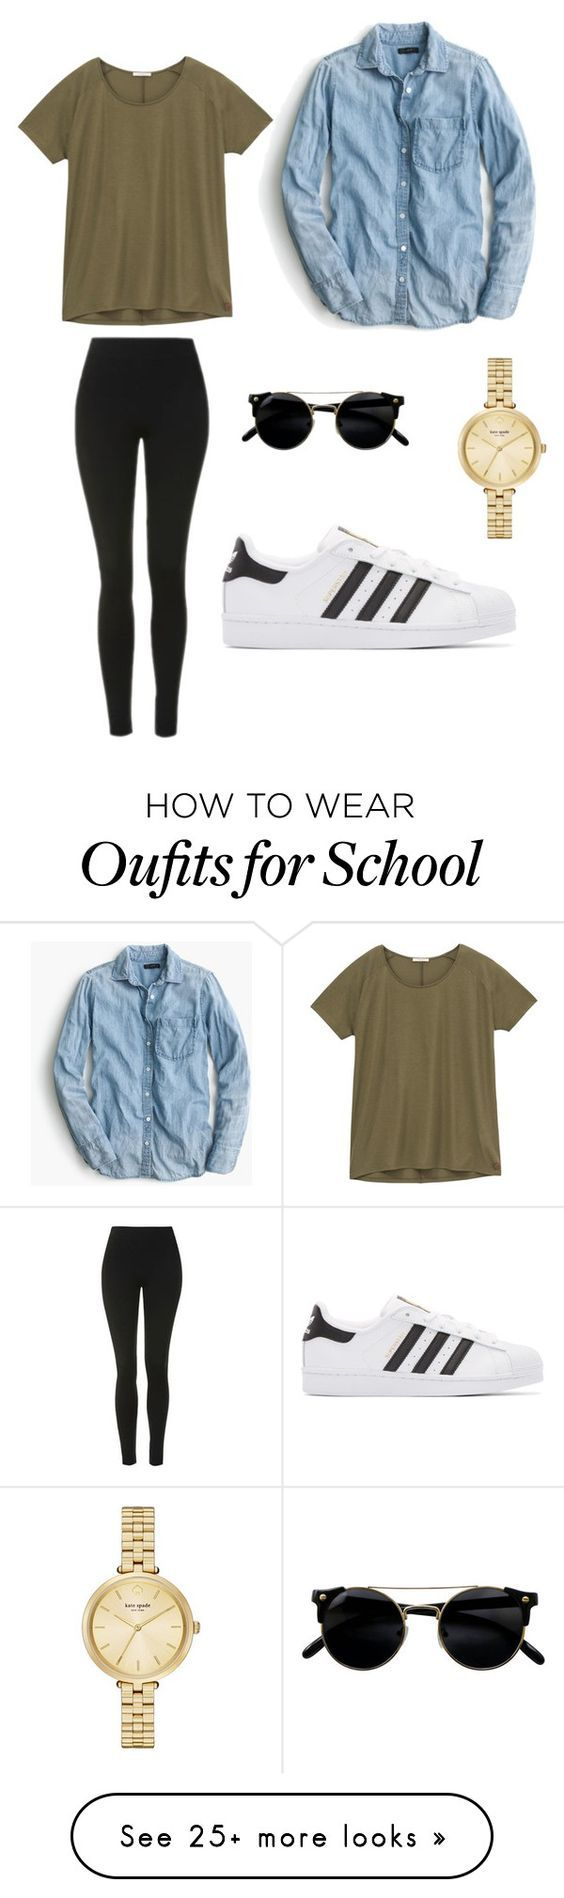 School Outfit by piperlauren2001 on Polyvore featuring J.Crew, Topshop, Lee, adidas Originals, Kate Spade, school and polyvoreeditorial